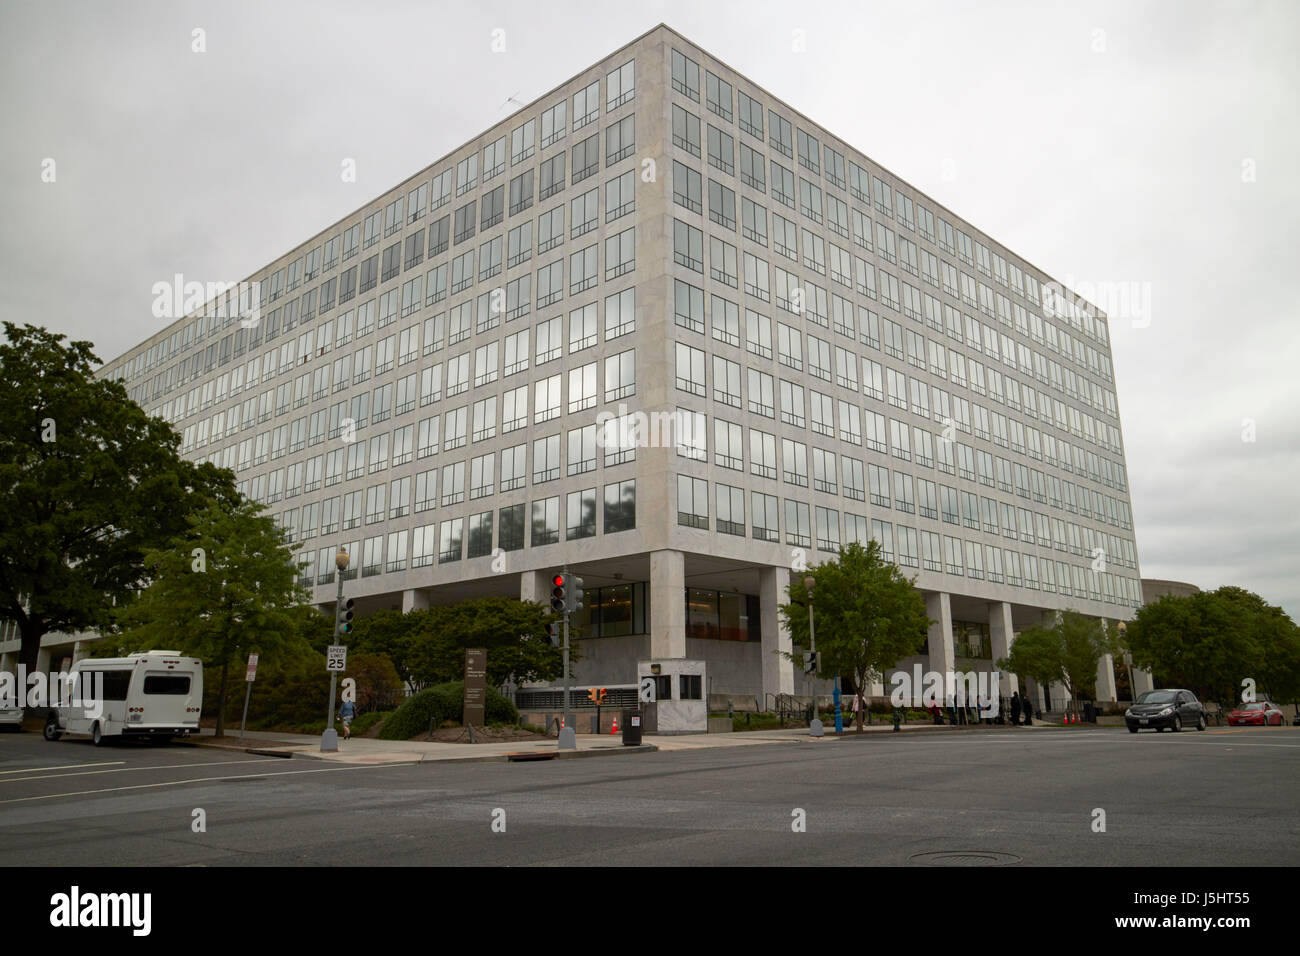 Orville Wright federal building faa federal aviation administration Washington DC USA - Stock Image